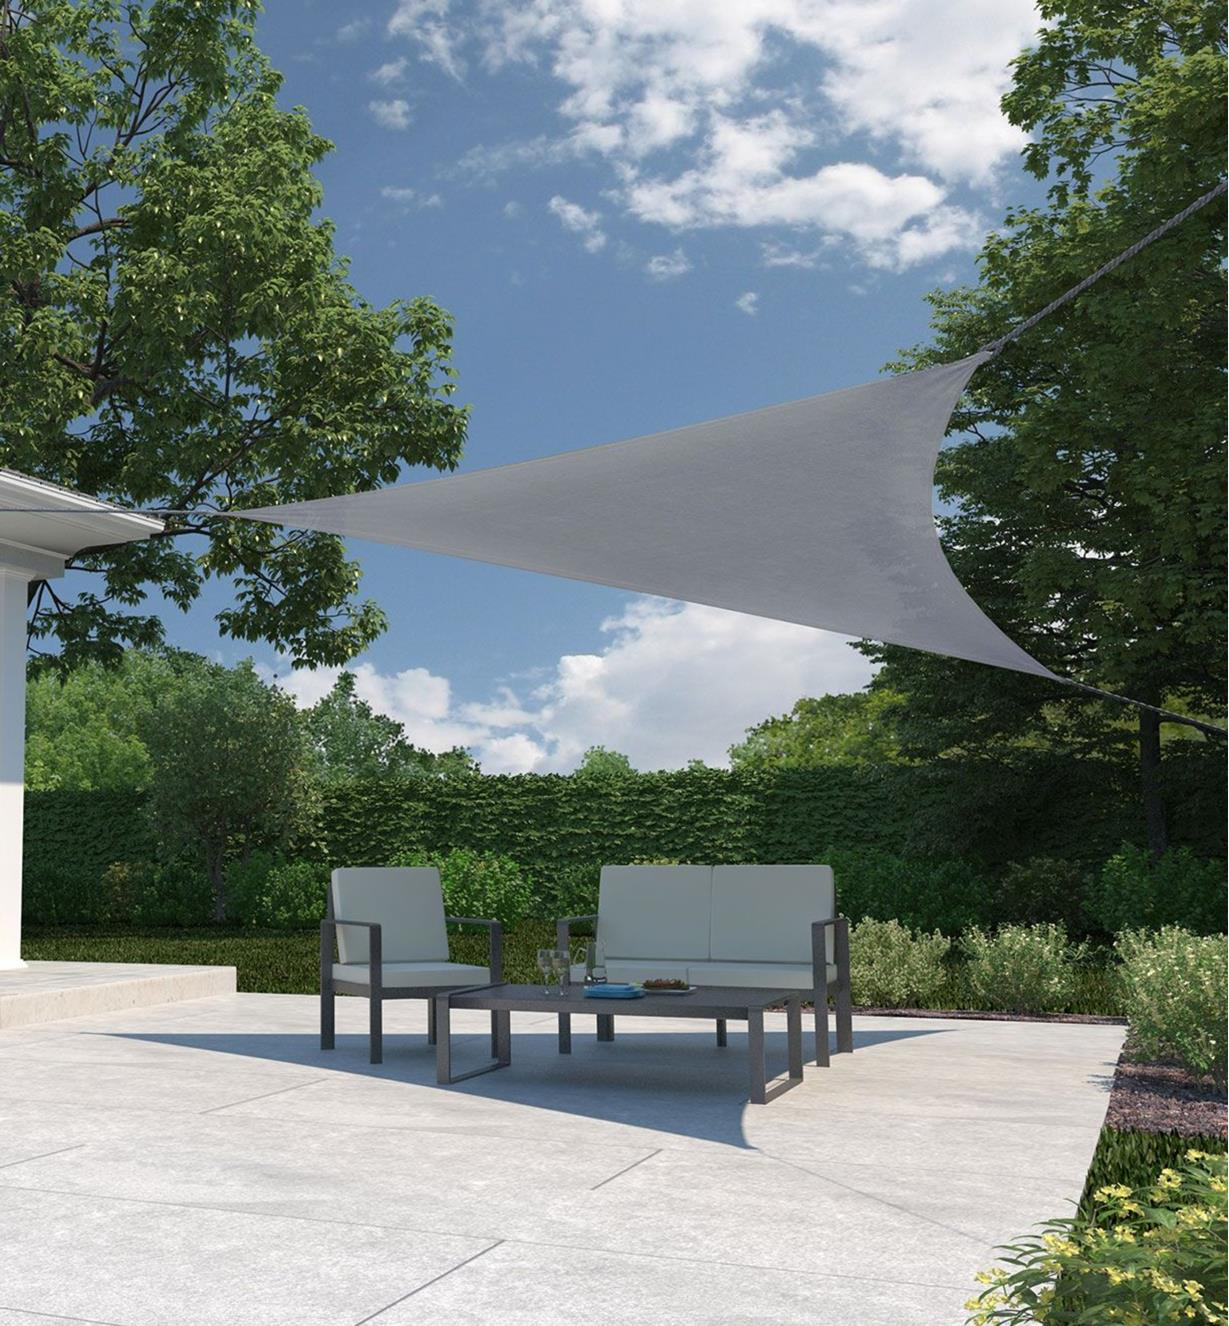 Triangle shade sail providing shade on an outdoor patio